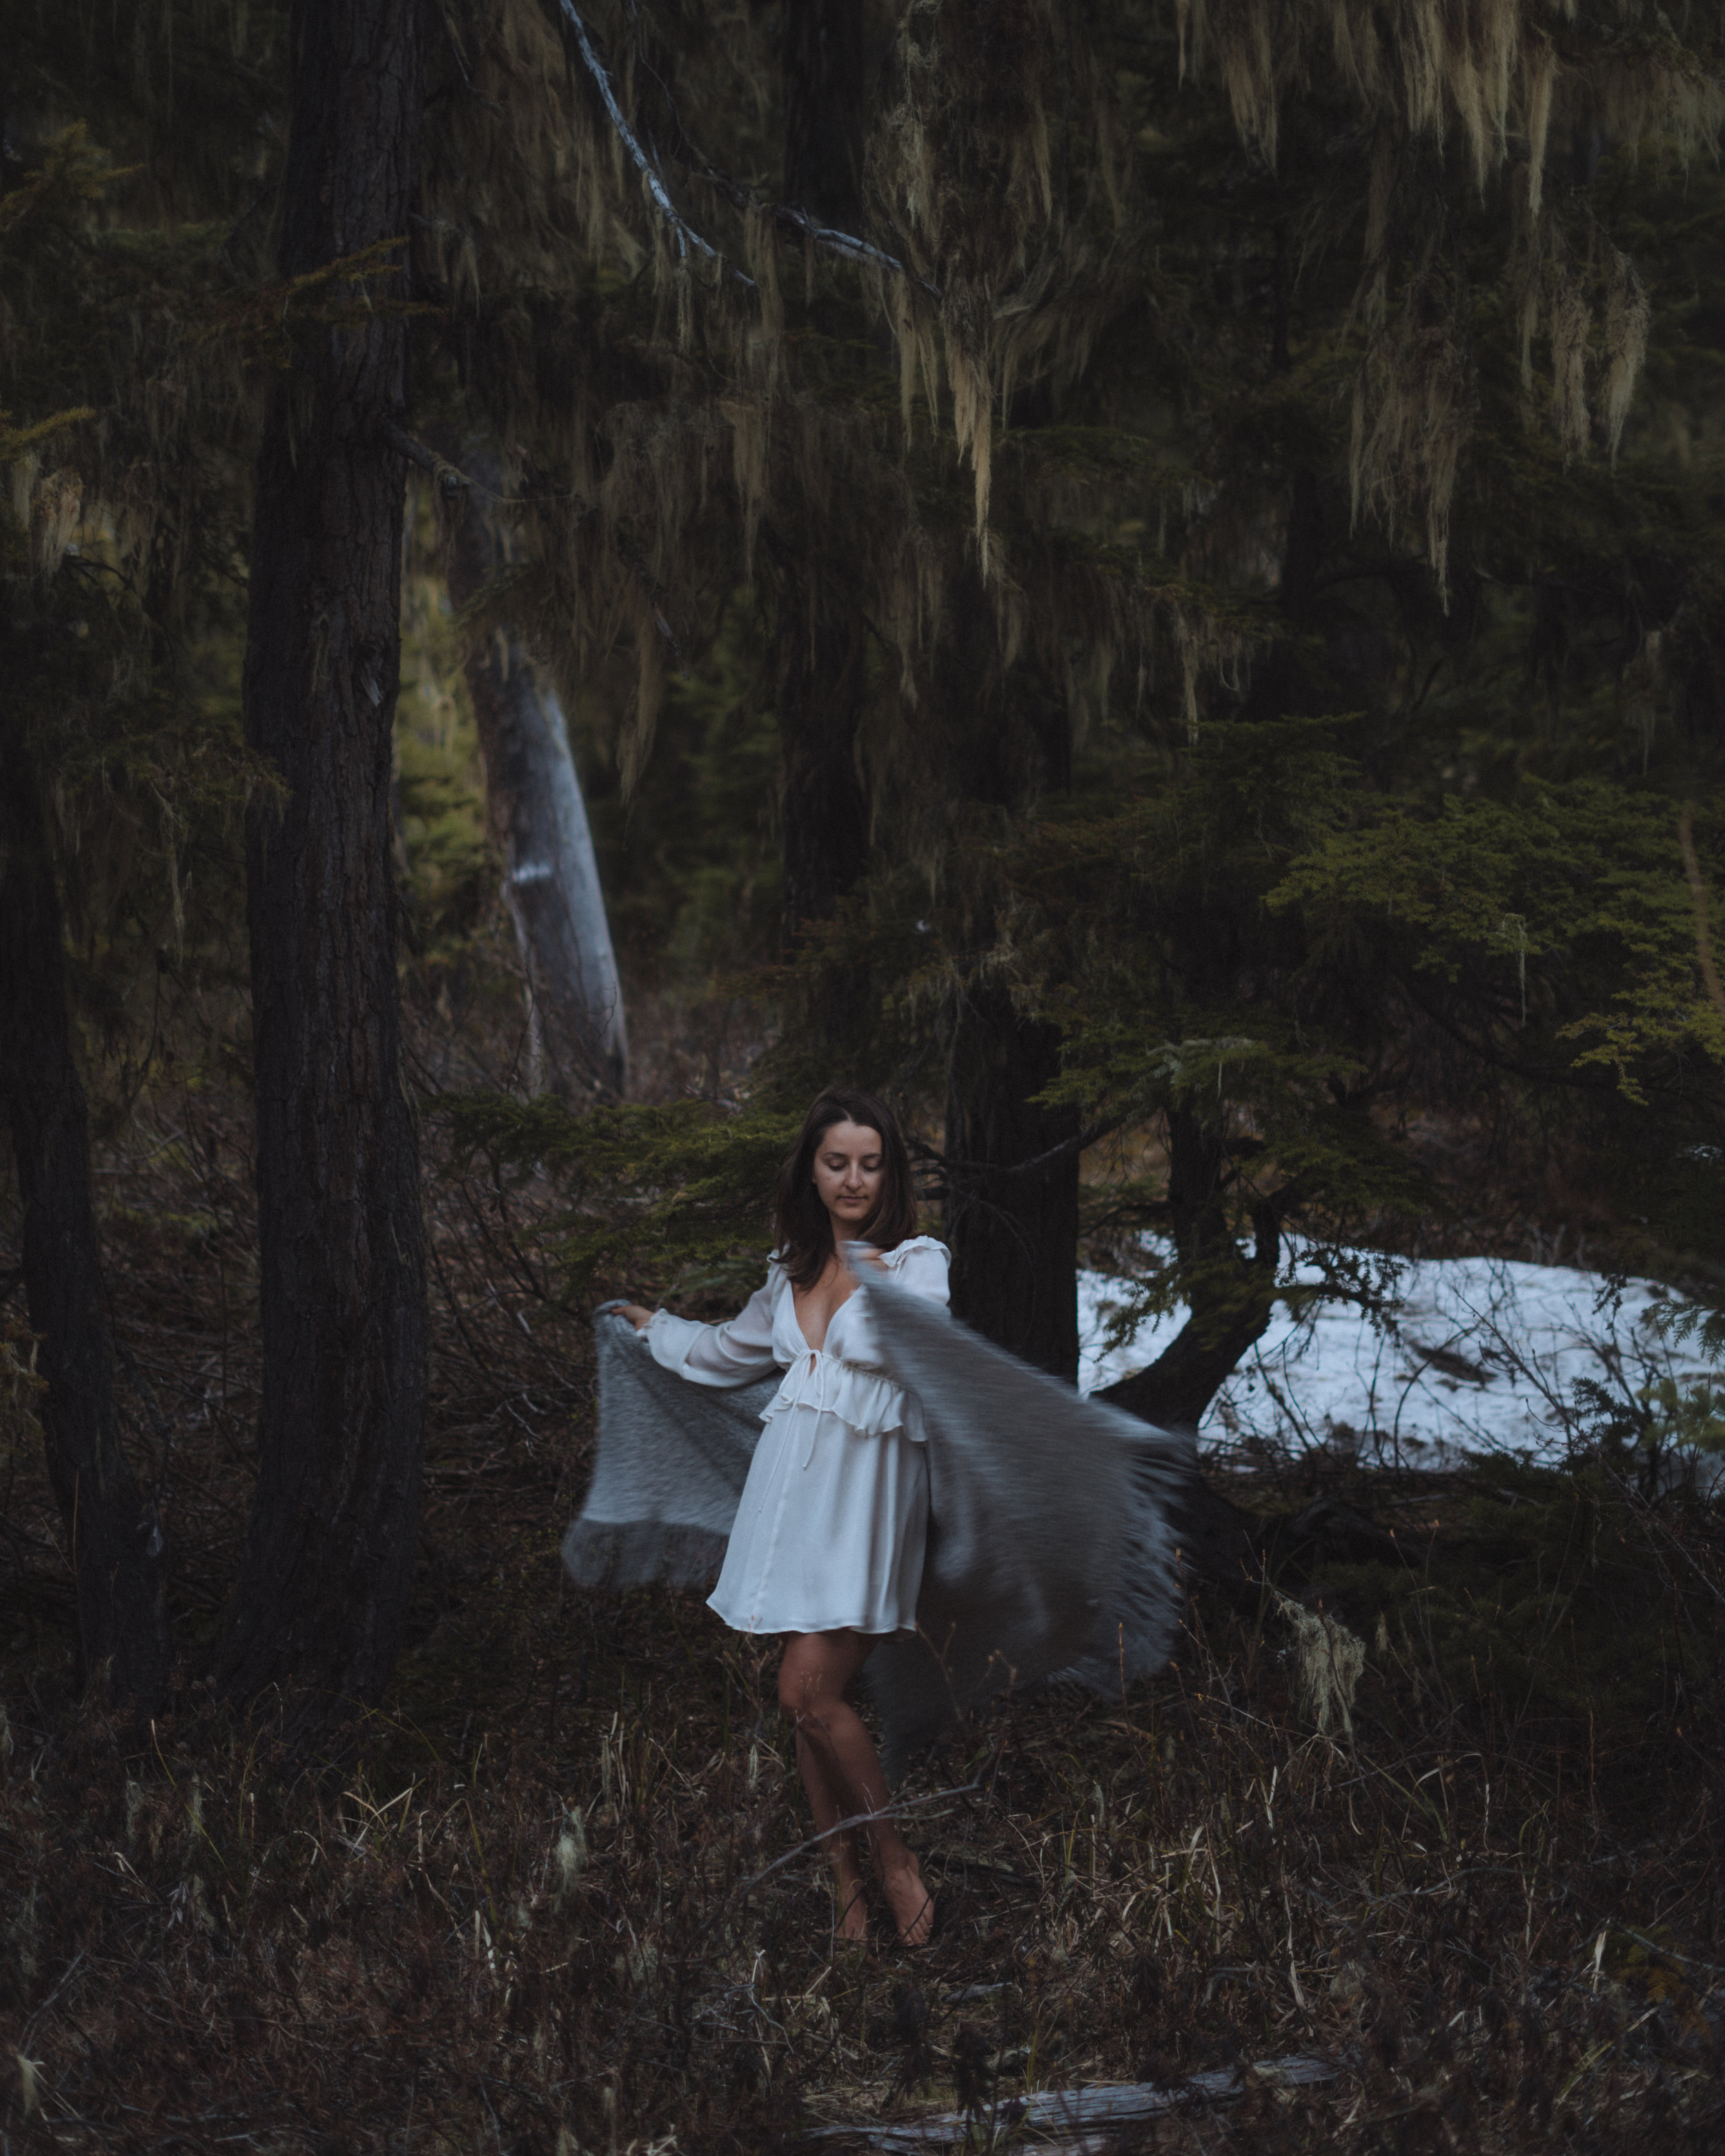 Vancouver-Canada-Travel-Elopement-Adventure-Wedding-Photographer-Emma-Rae.jpg